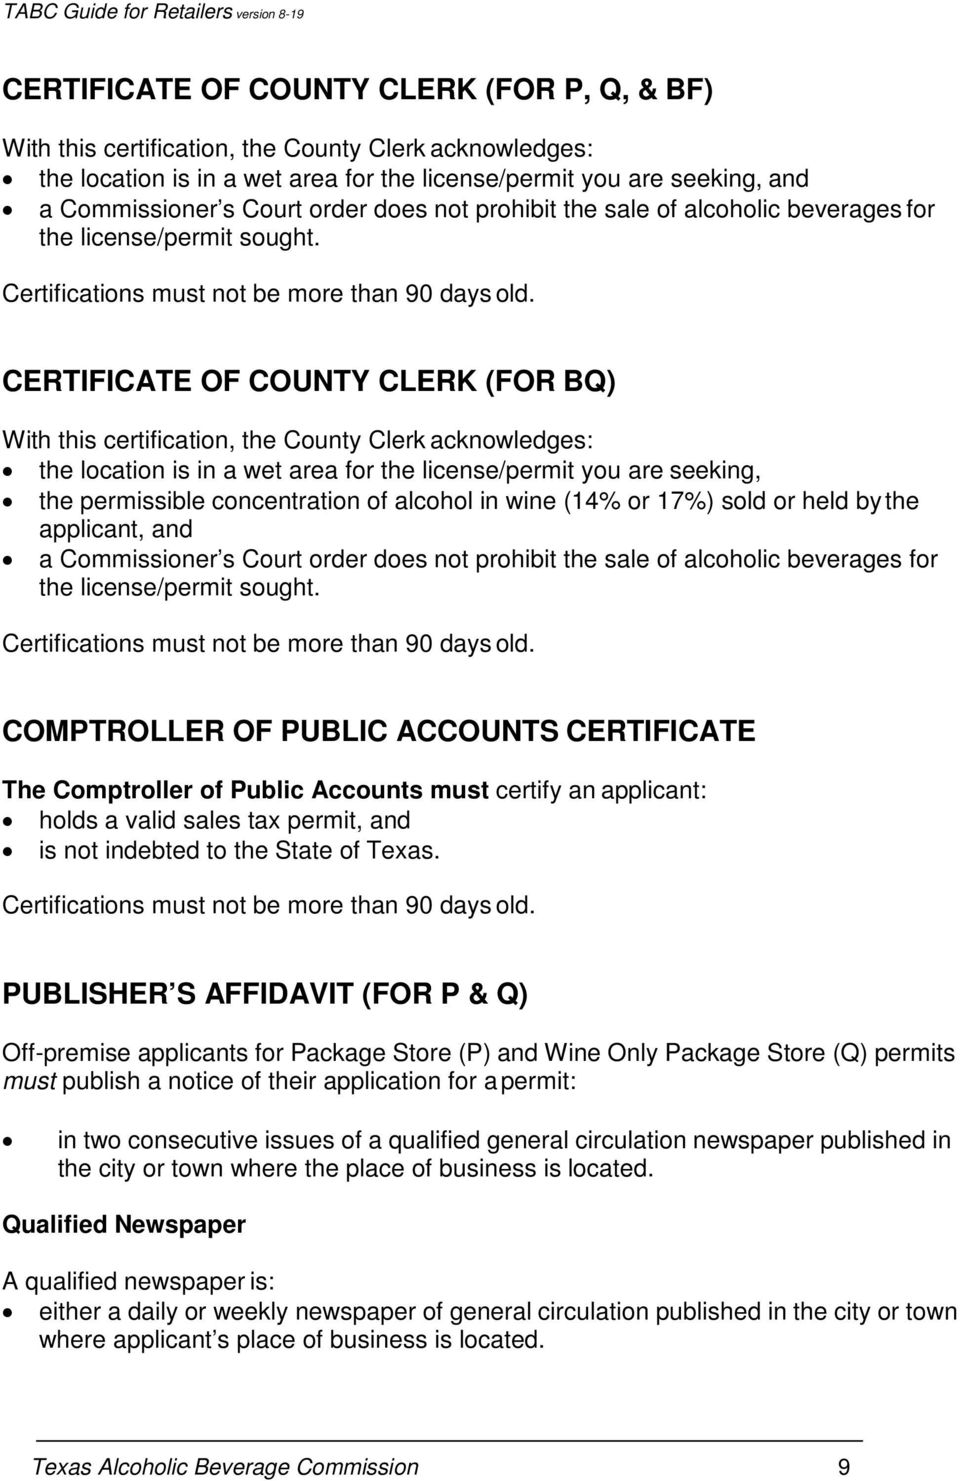 CERTIFICATE OF COUNTY CLERK (FOR BQ) With this certification, the County Clerk acknowledges: the location is in a wet area for the license/permit you are seeking, the permissible concentration of